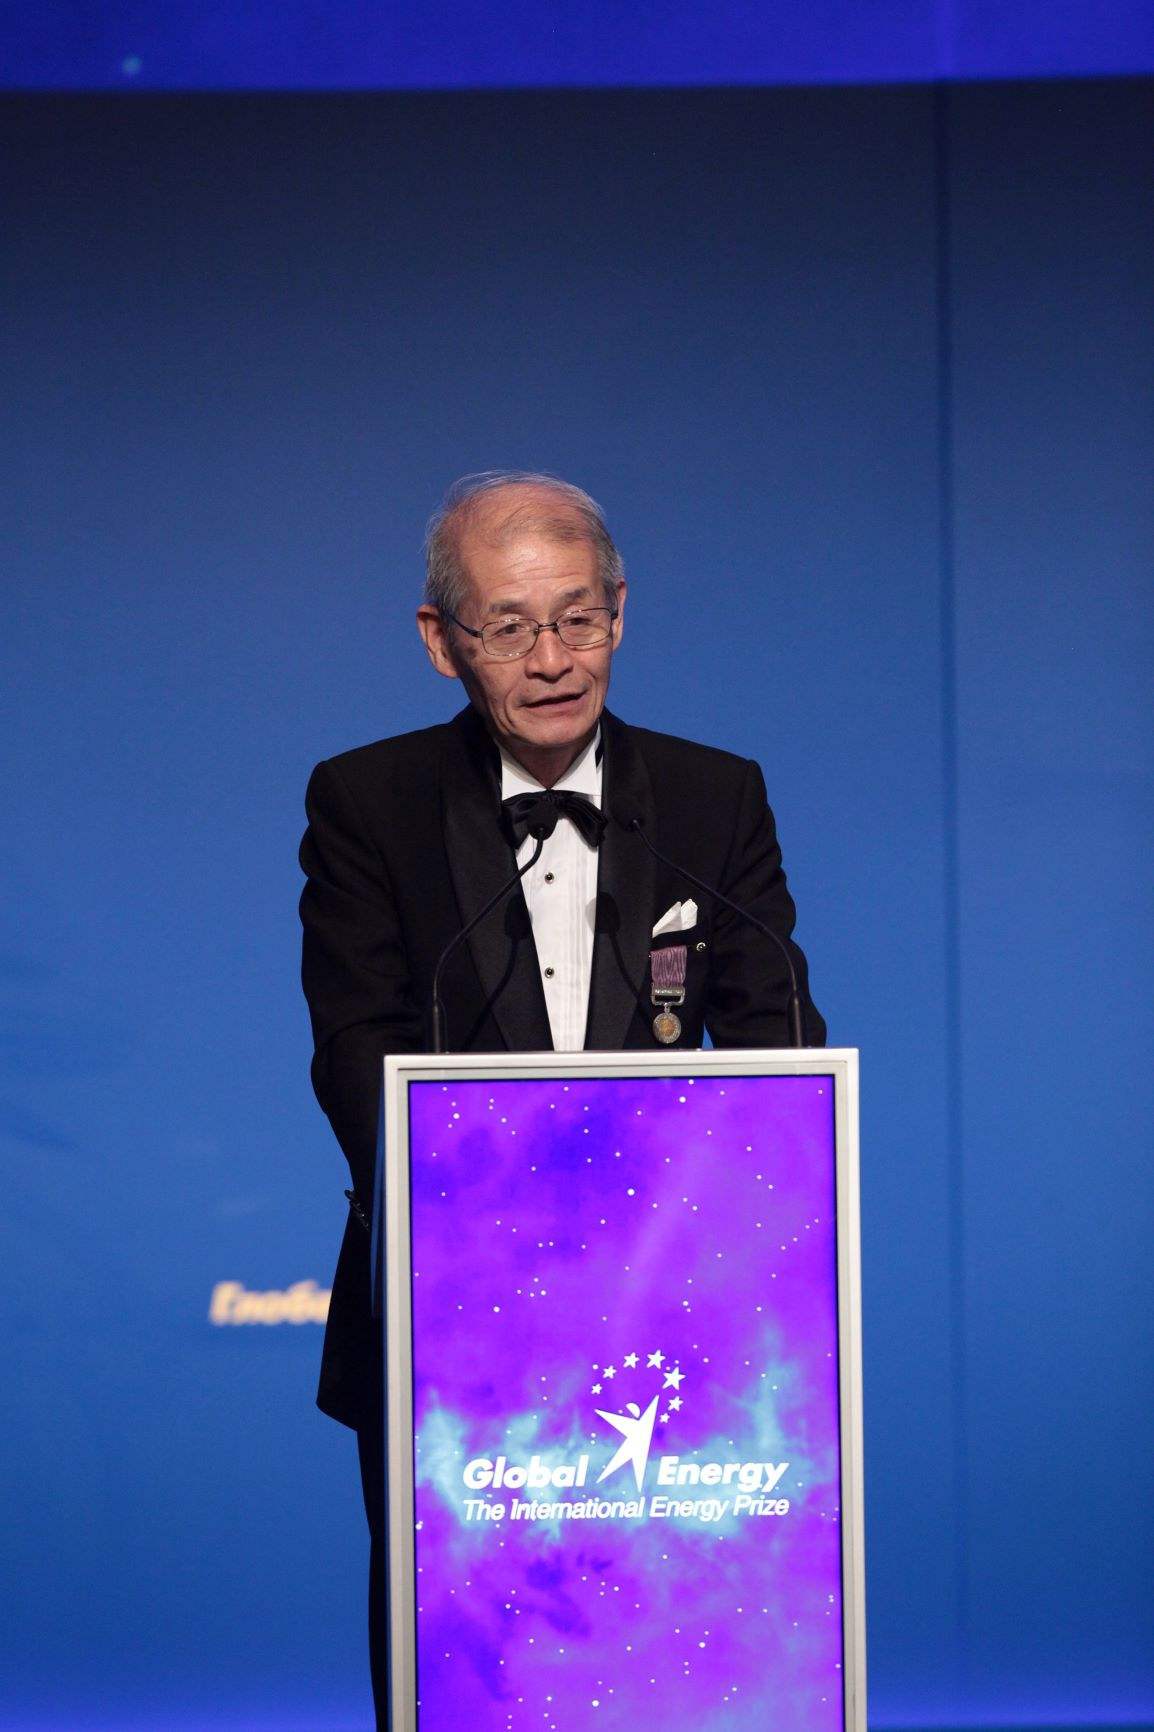 One out of 3 Nobel Prize Winners in Chemistry is a Global Energy Prize Laureate